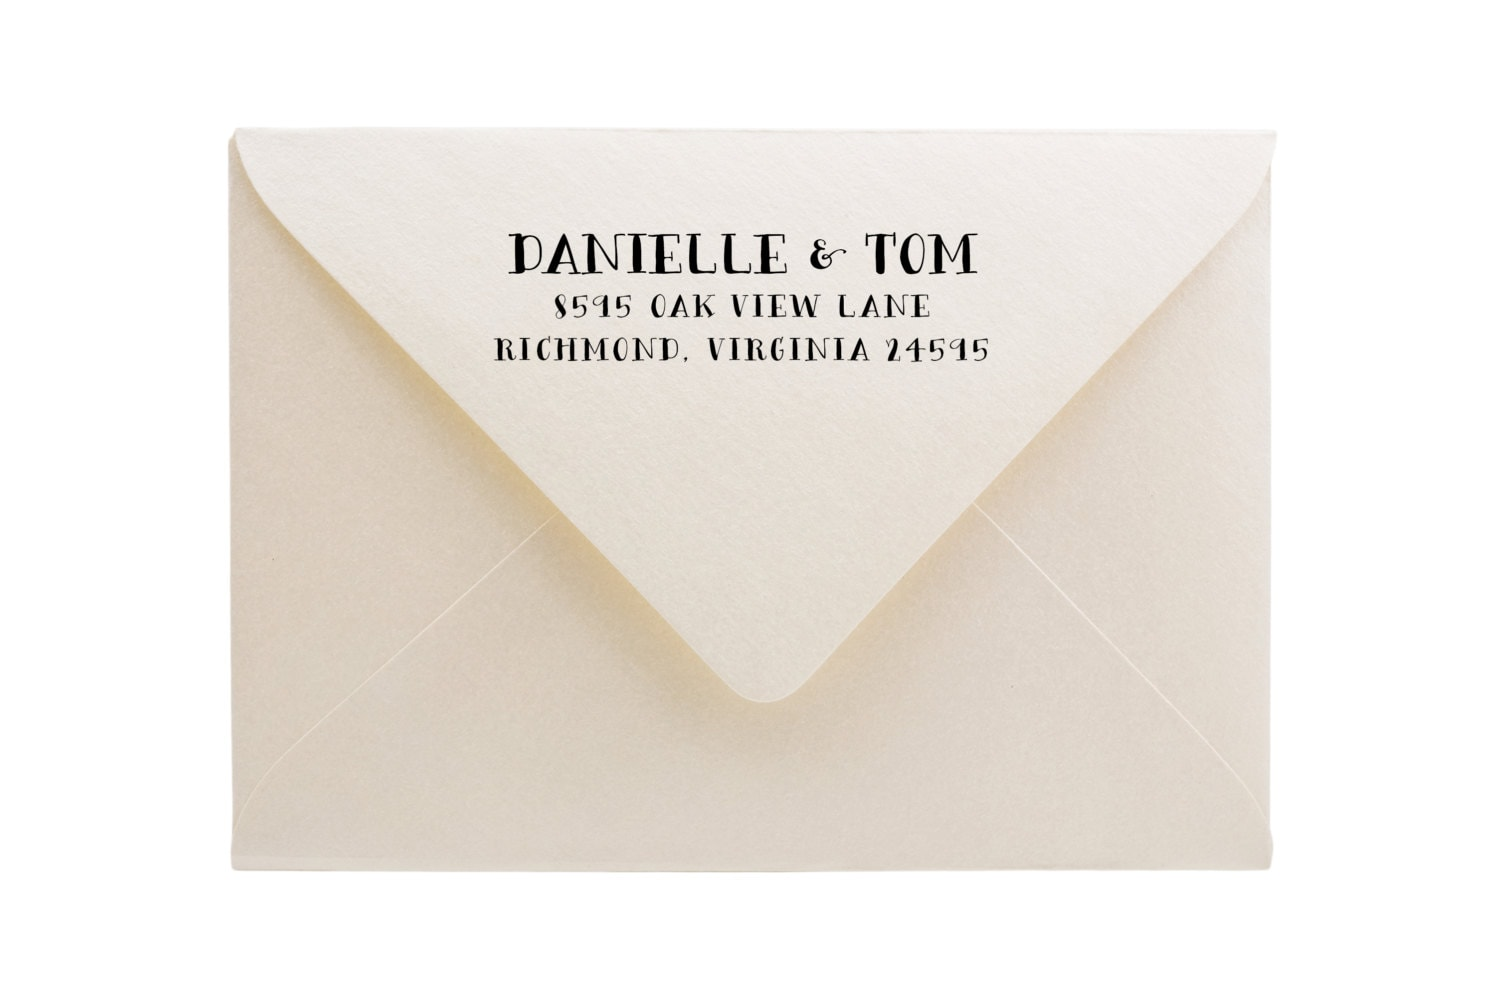 Personalized Stamps For Wedding Invitations: Wedding Stamp Custom Return Address Stamp Wedding